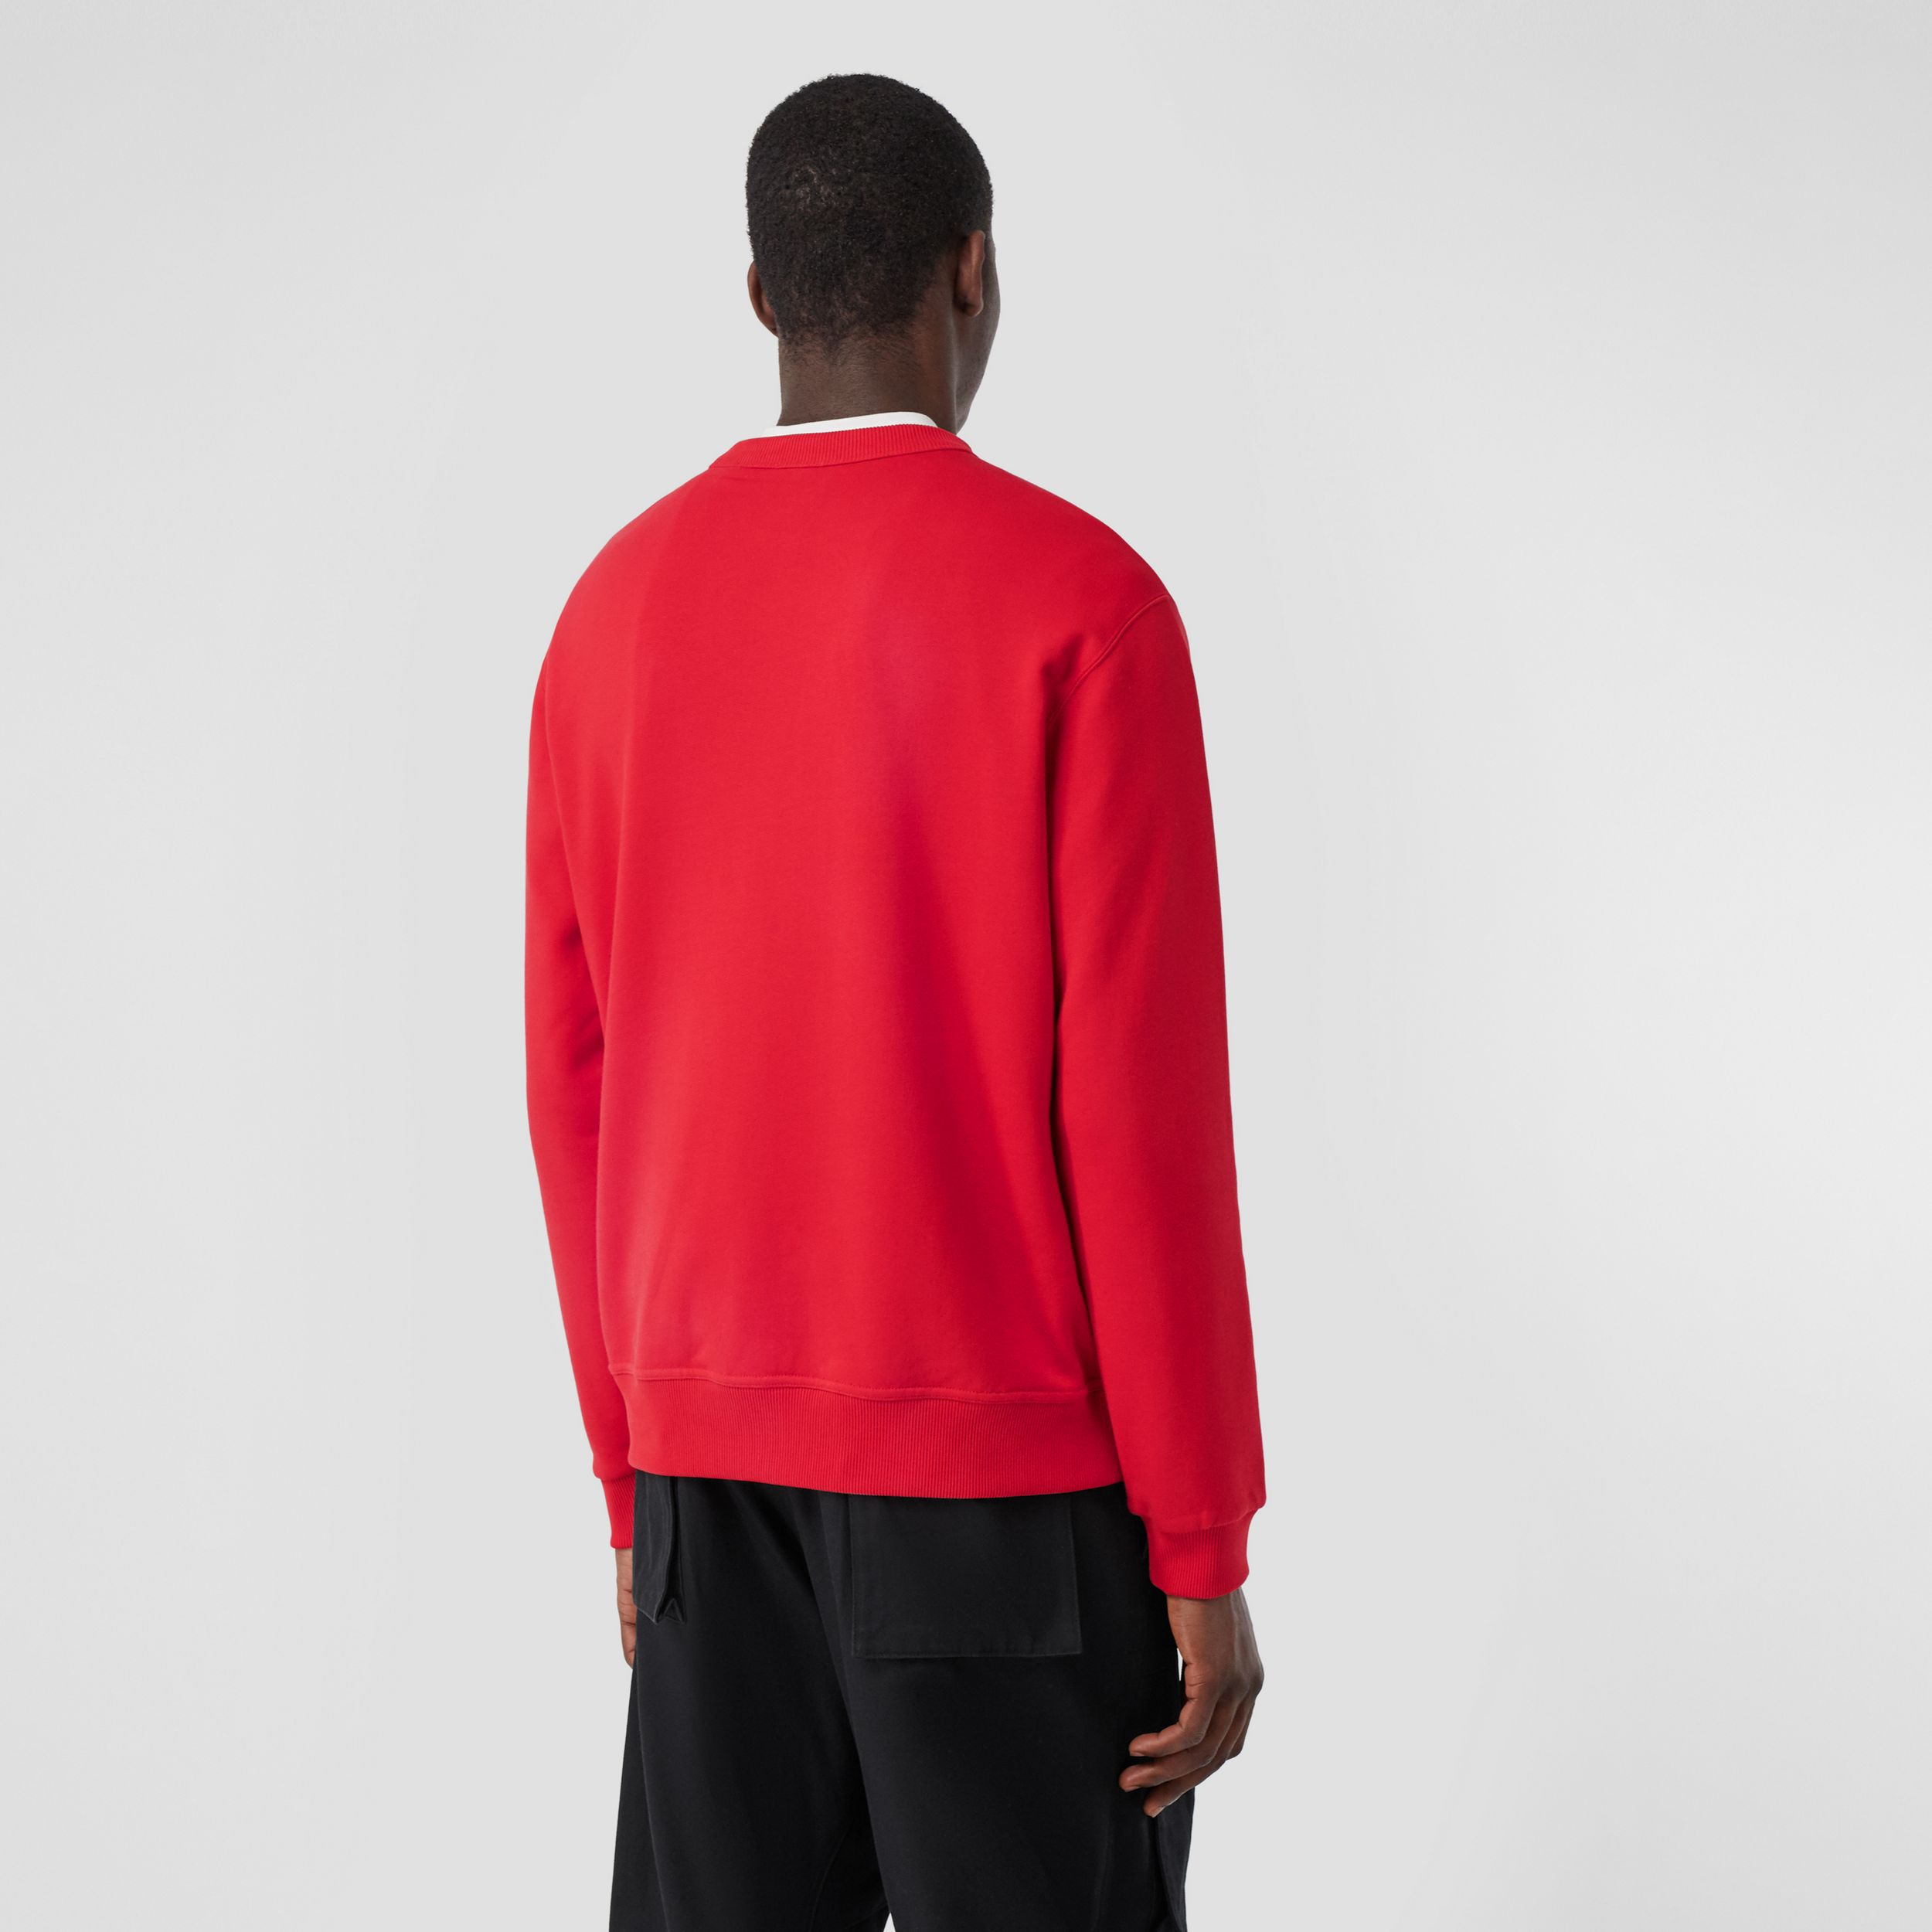 Monogram Motif Cotton Sweatshirt in Bright Red - Men | Burberry Australia - 3